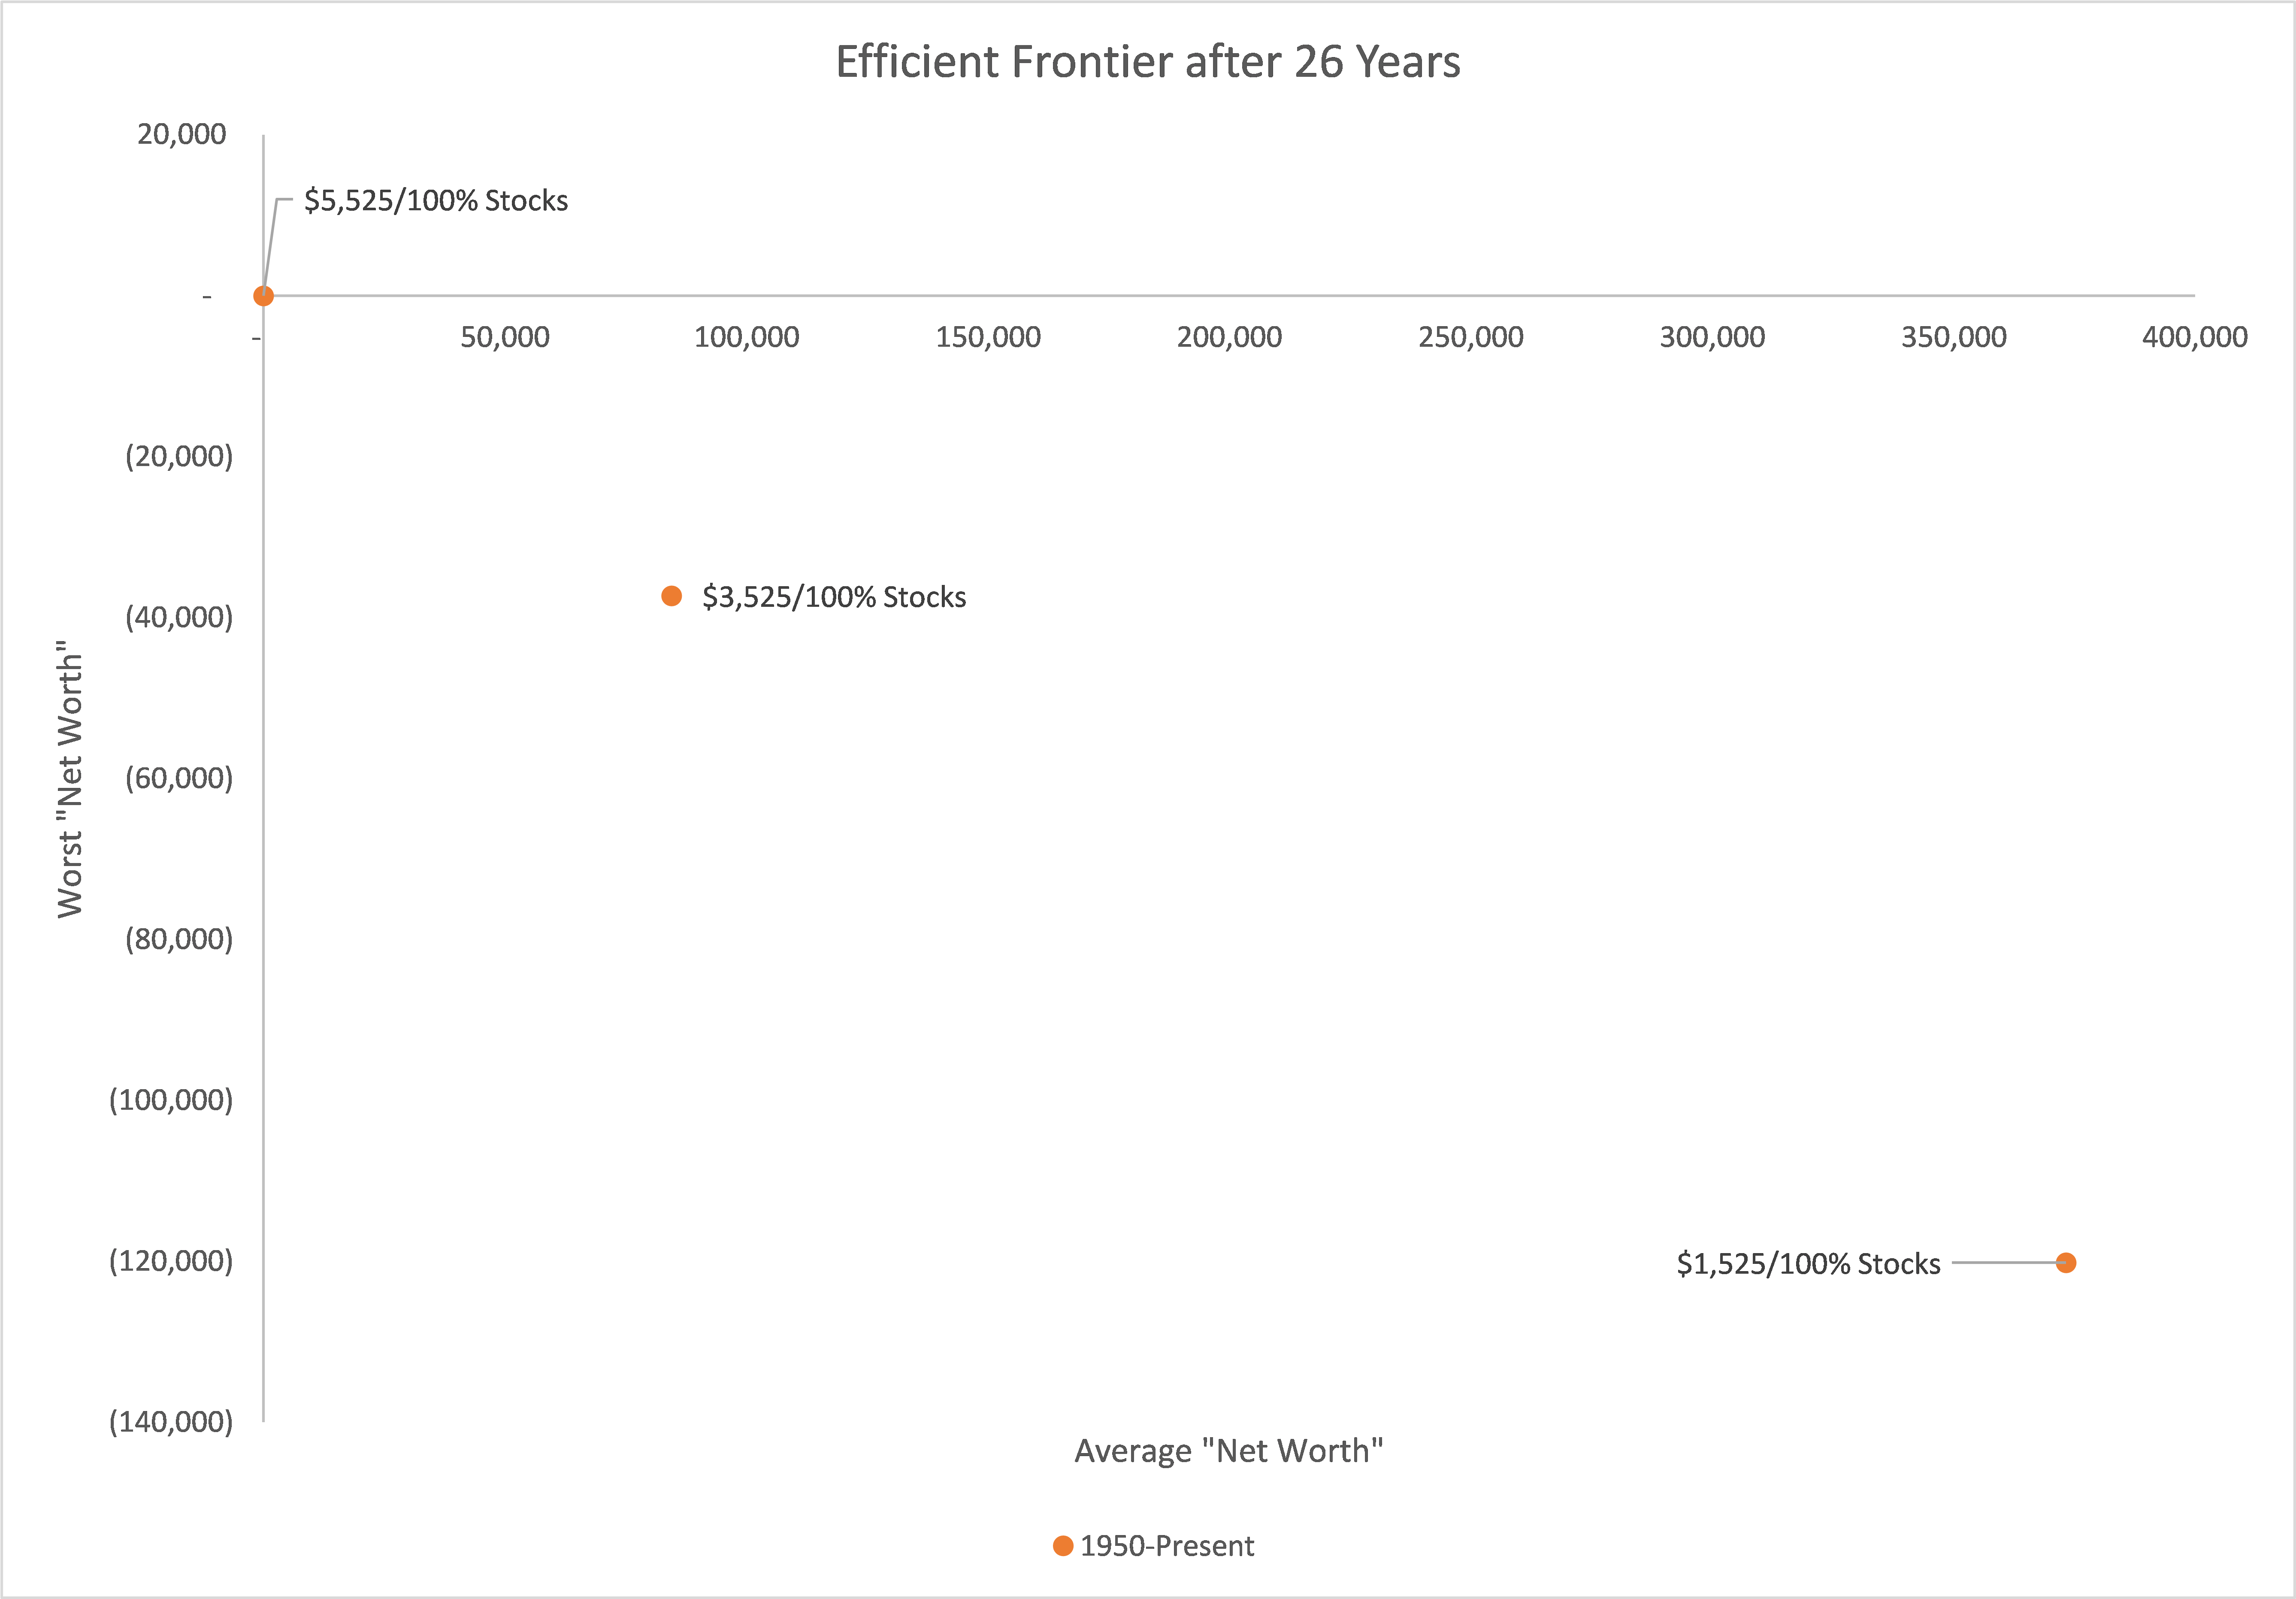 Efficient Frontier after 26 Years